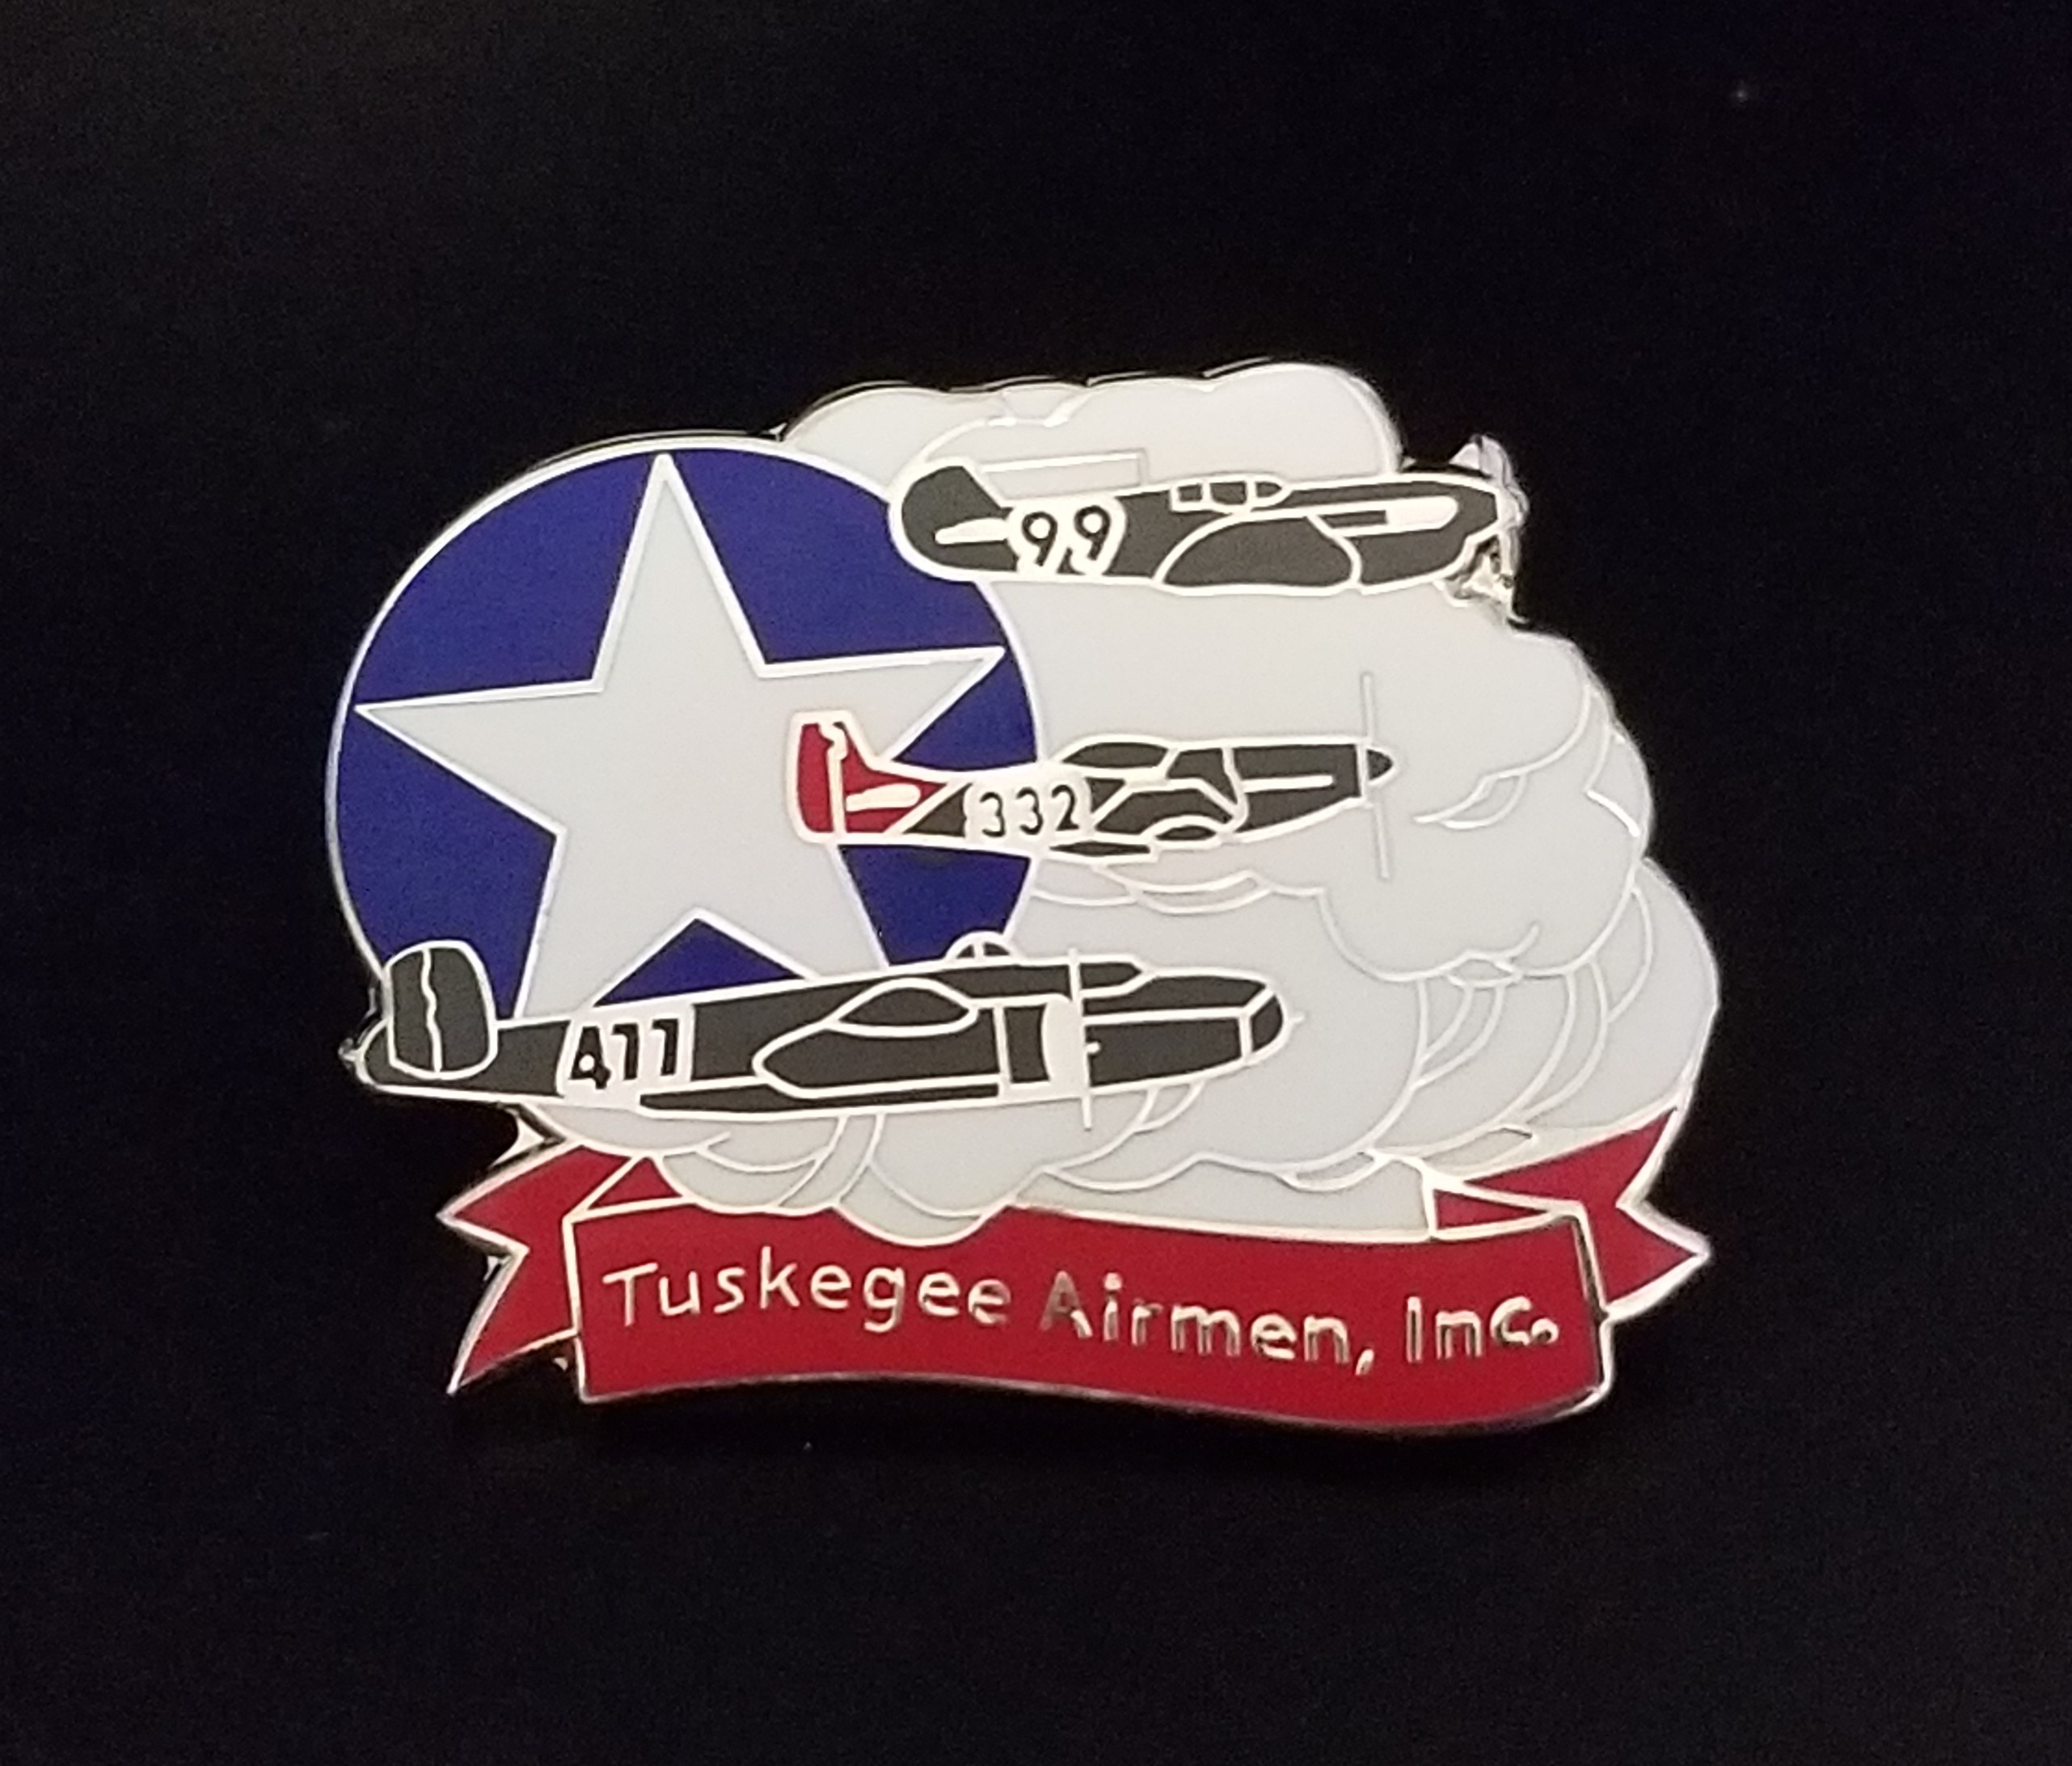 Inaugural Tuskegee Airmen Charity Golf Tournament - Default Image of Tuskegee Airmen lapel pin